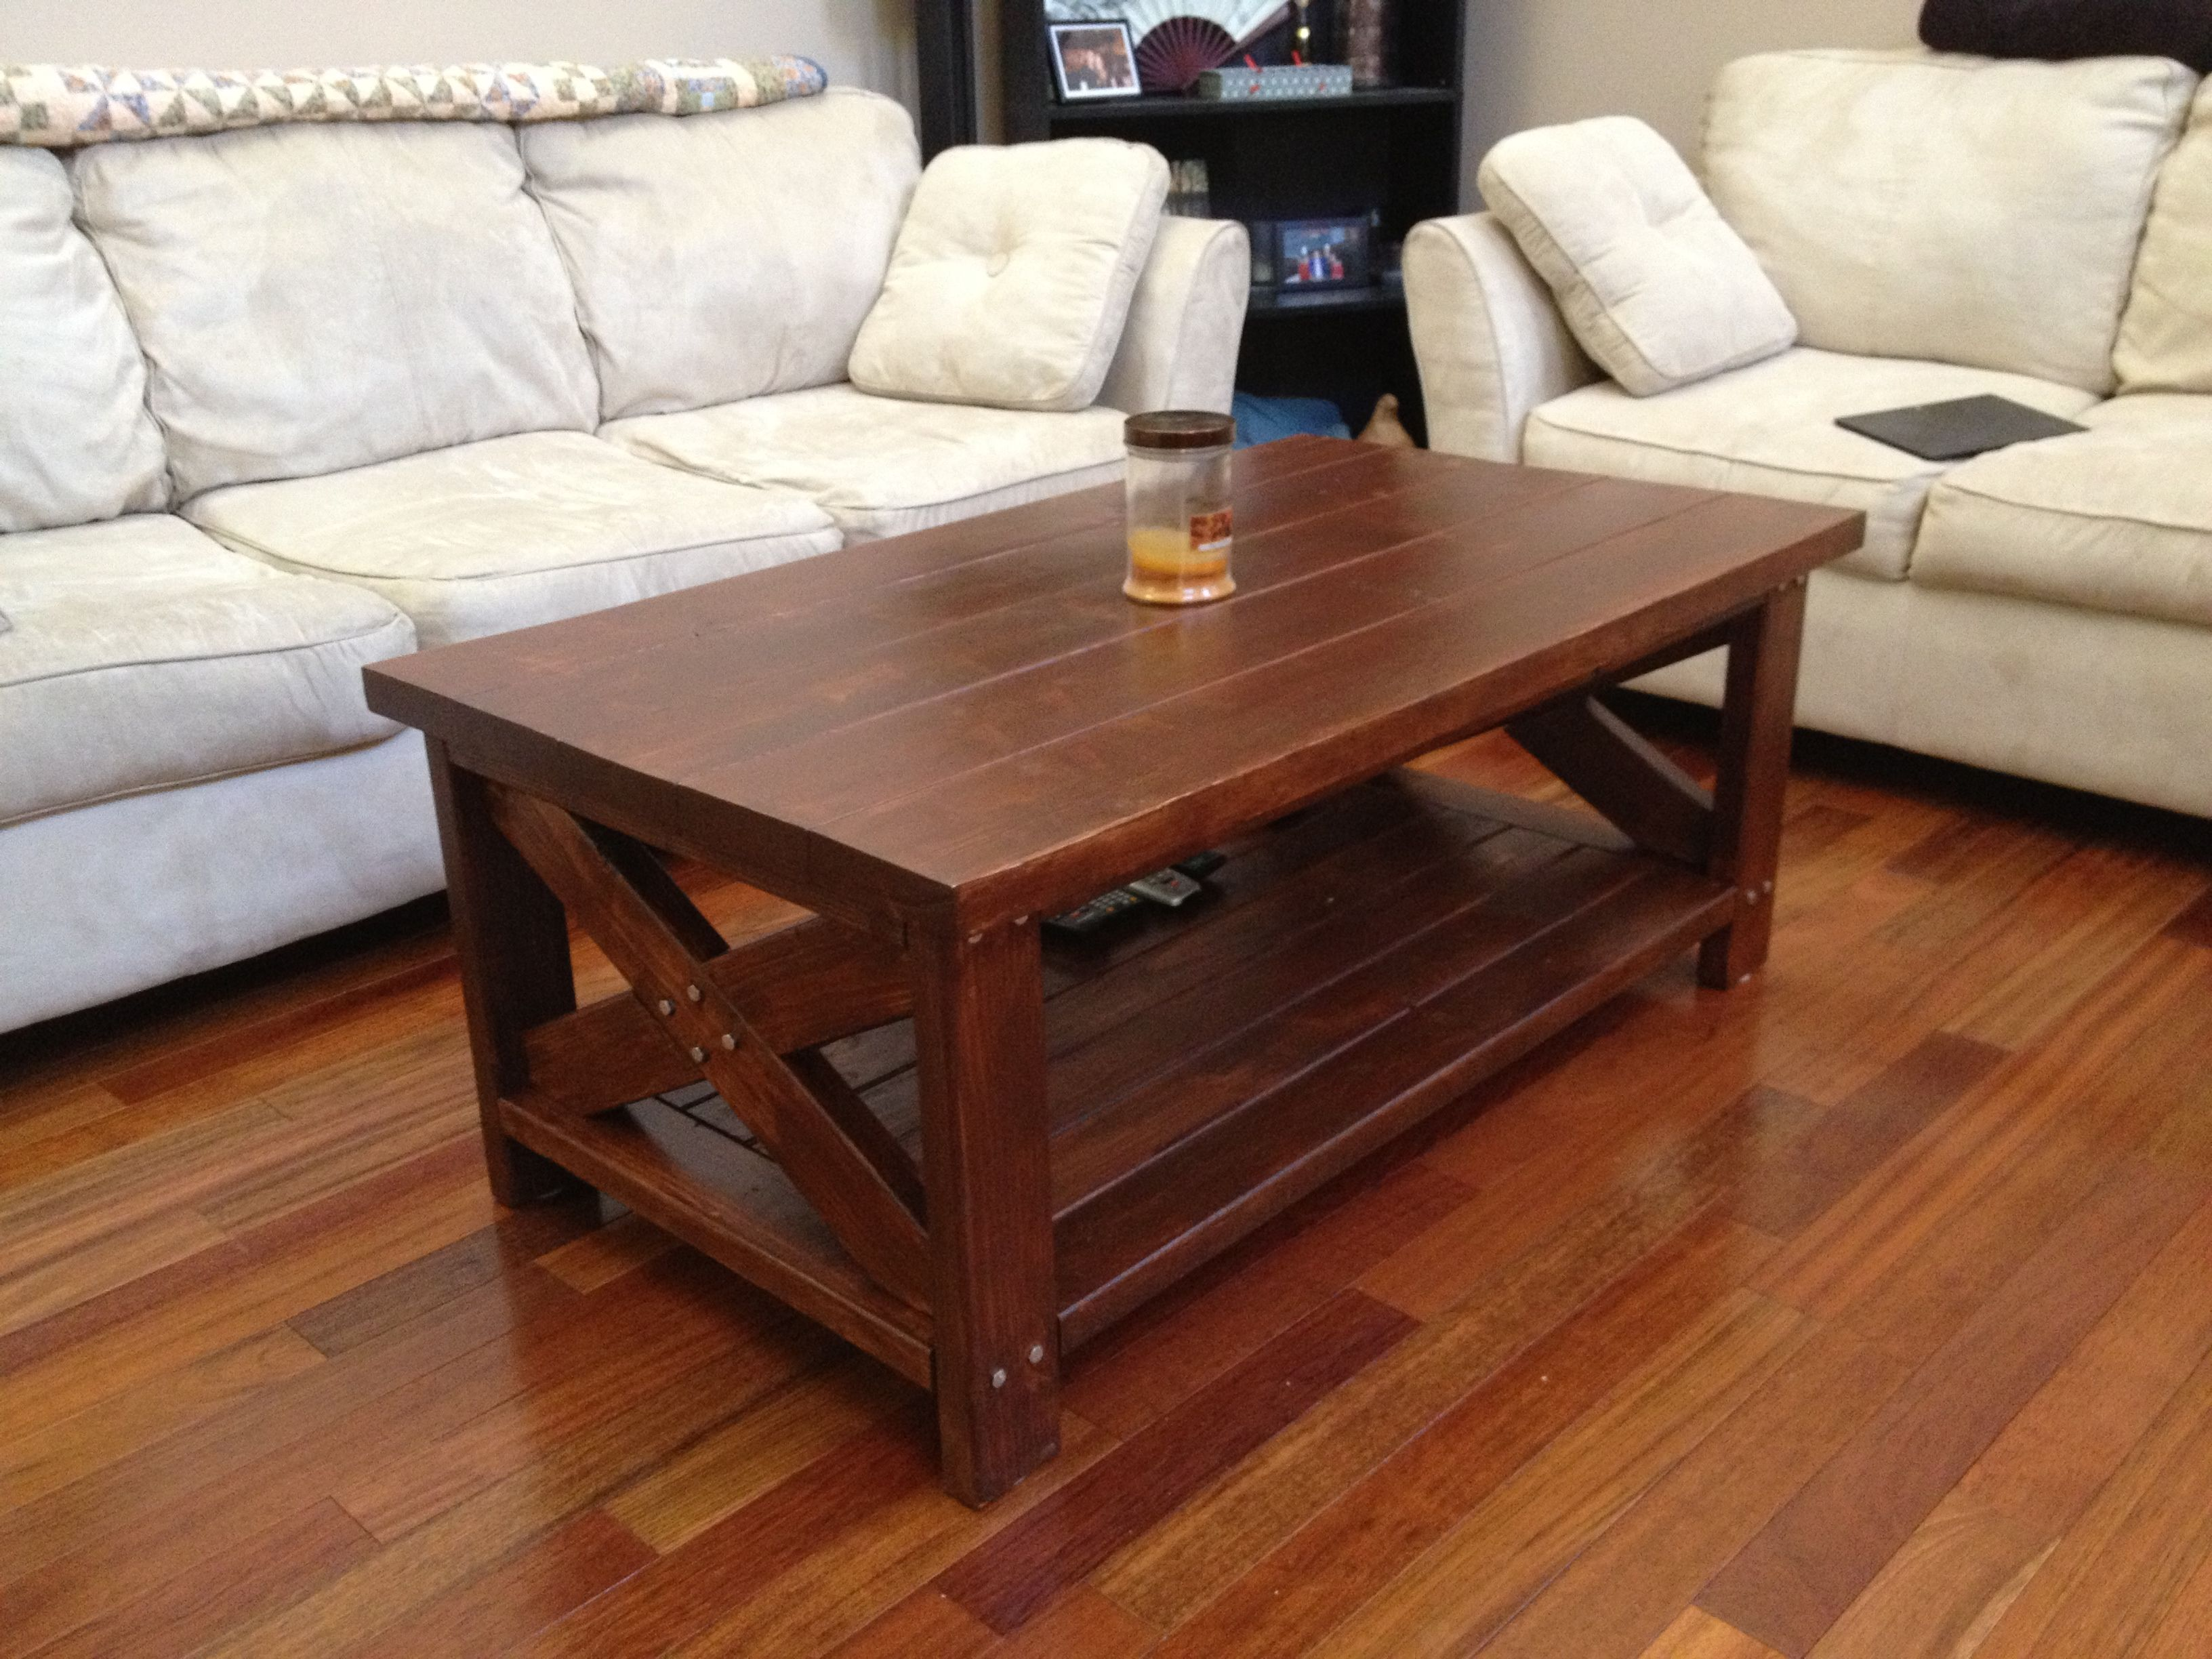 Rustic Farm Style Coffee Table made from 2x4 s and 2x6 s